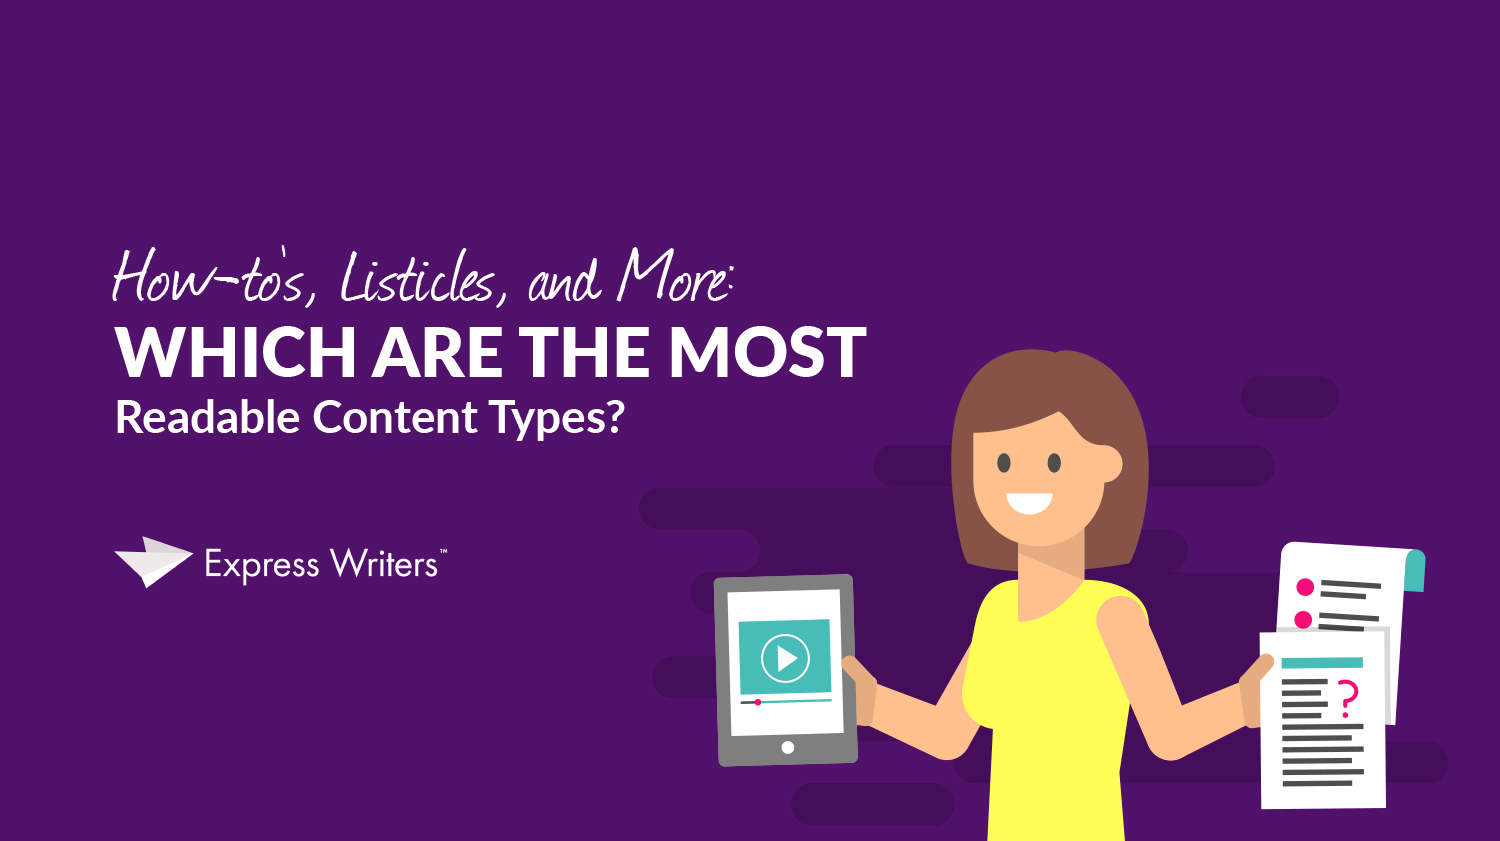 How-to's, Listicles, and More: Which Are the Most Readable Content Types?